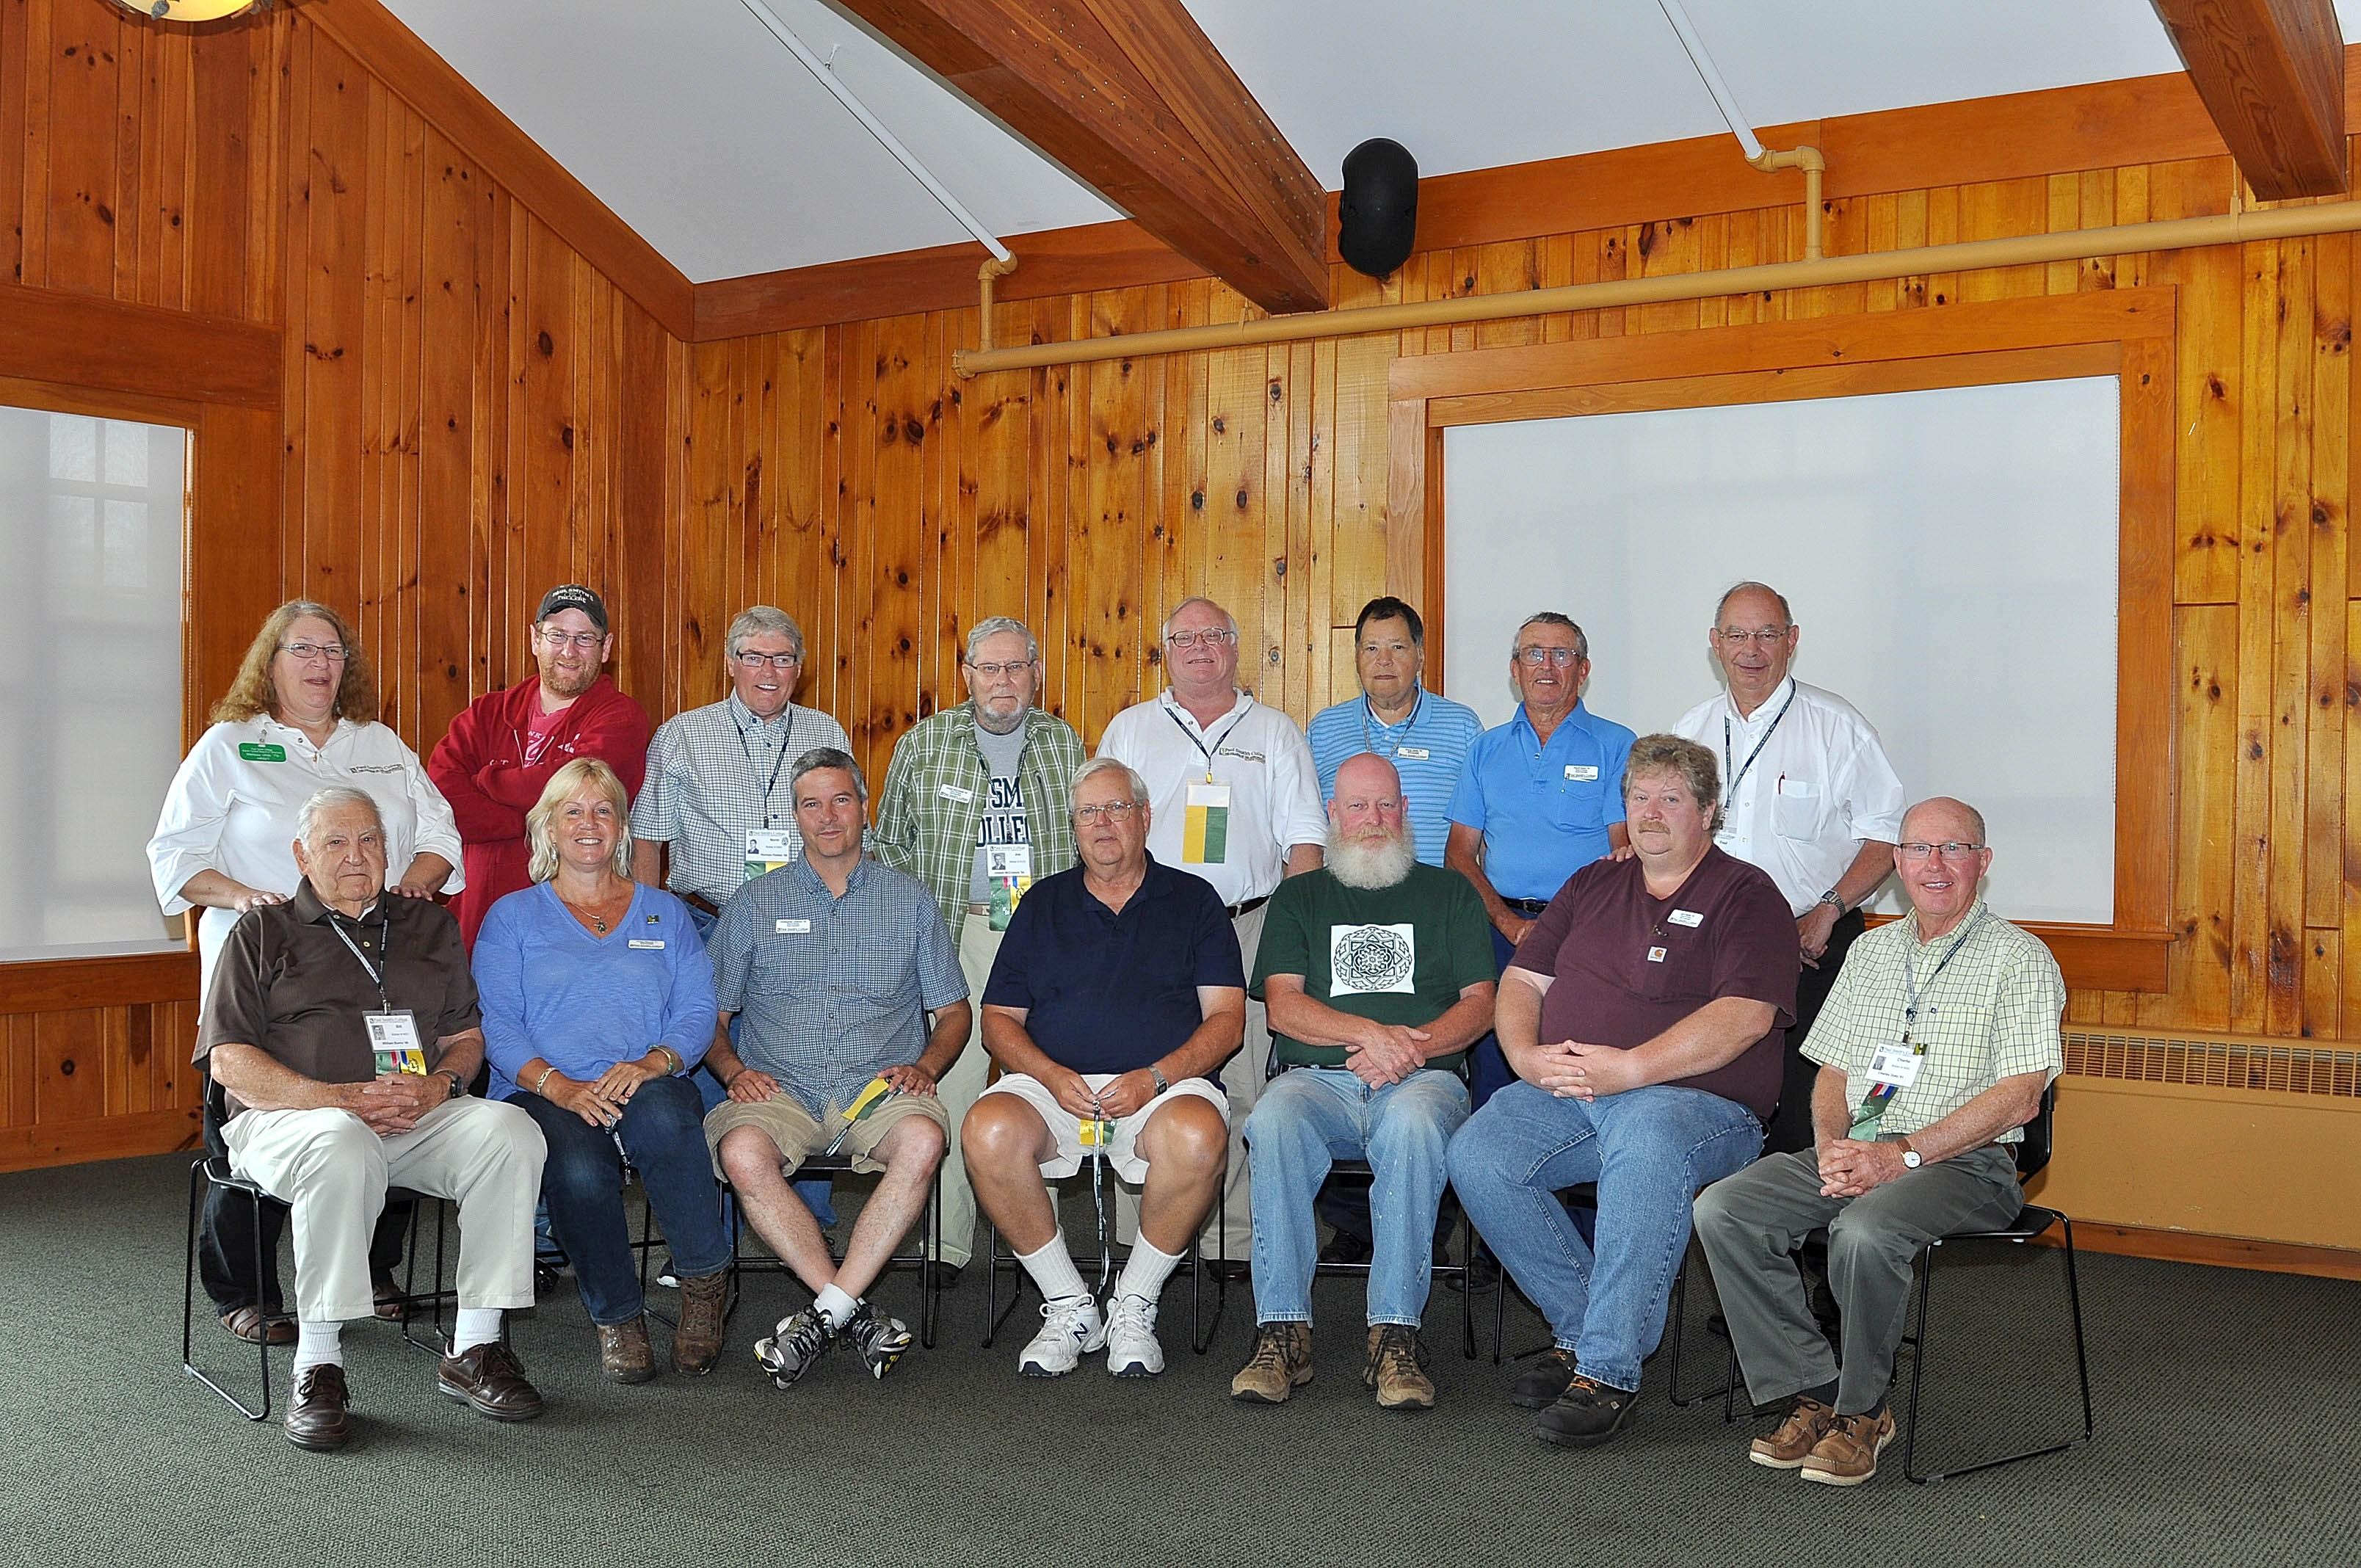 Alumni Board Members at Reunion 2015